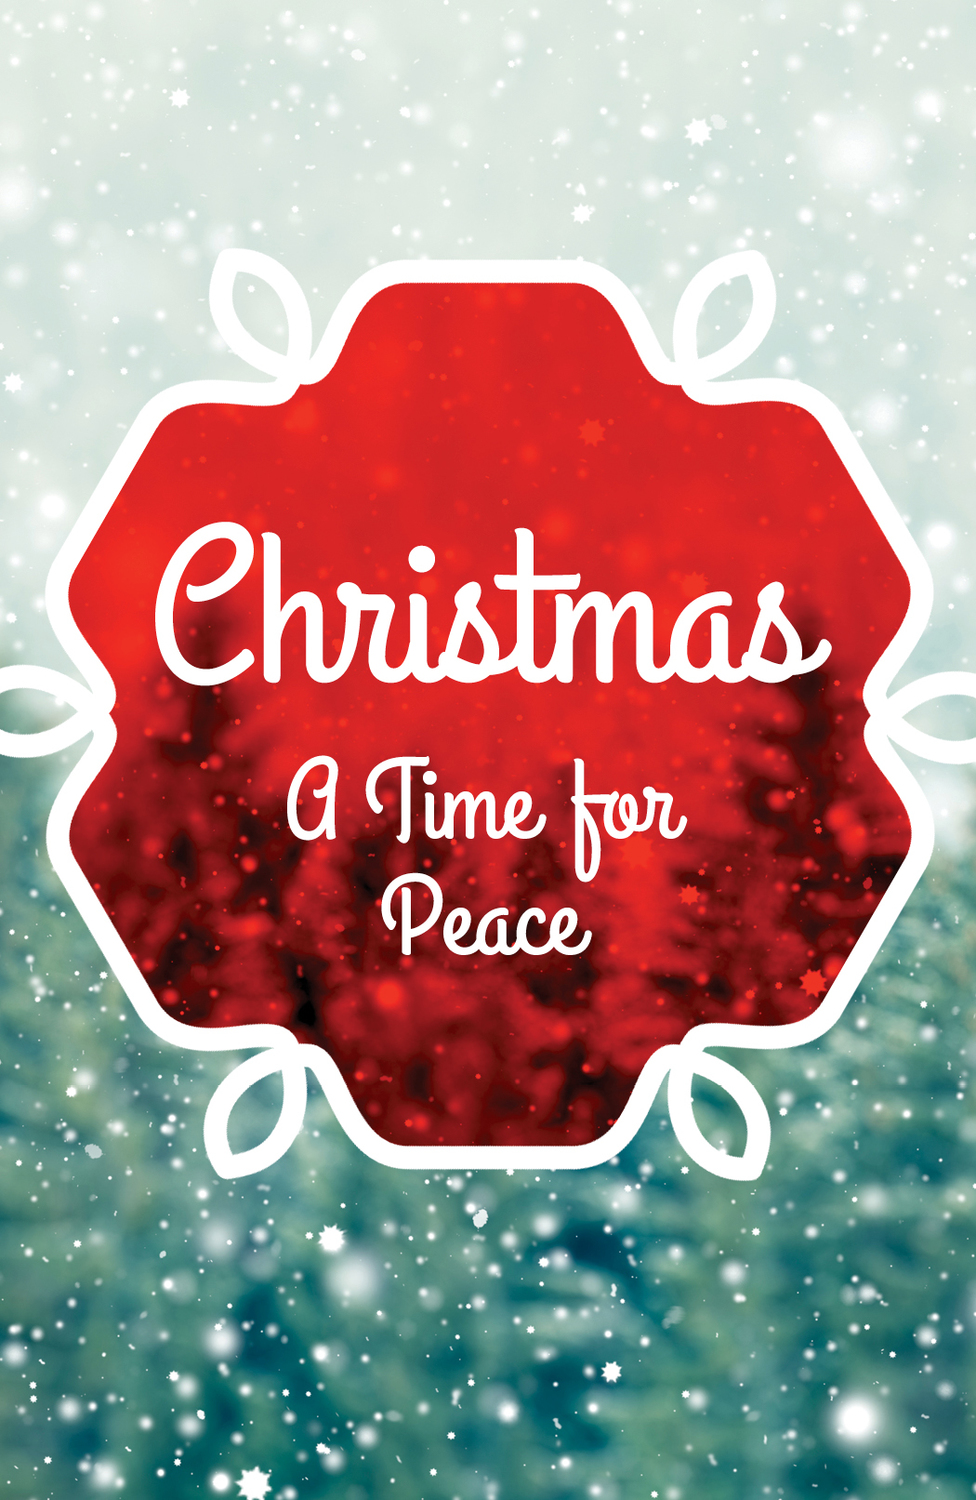 Christmas: A Time for Peace (ATS)